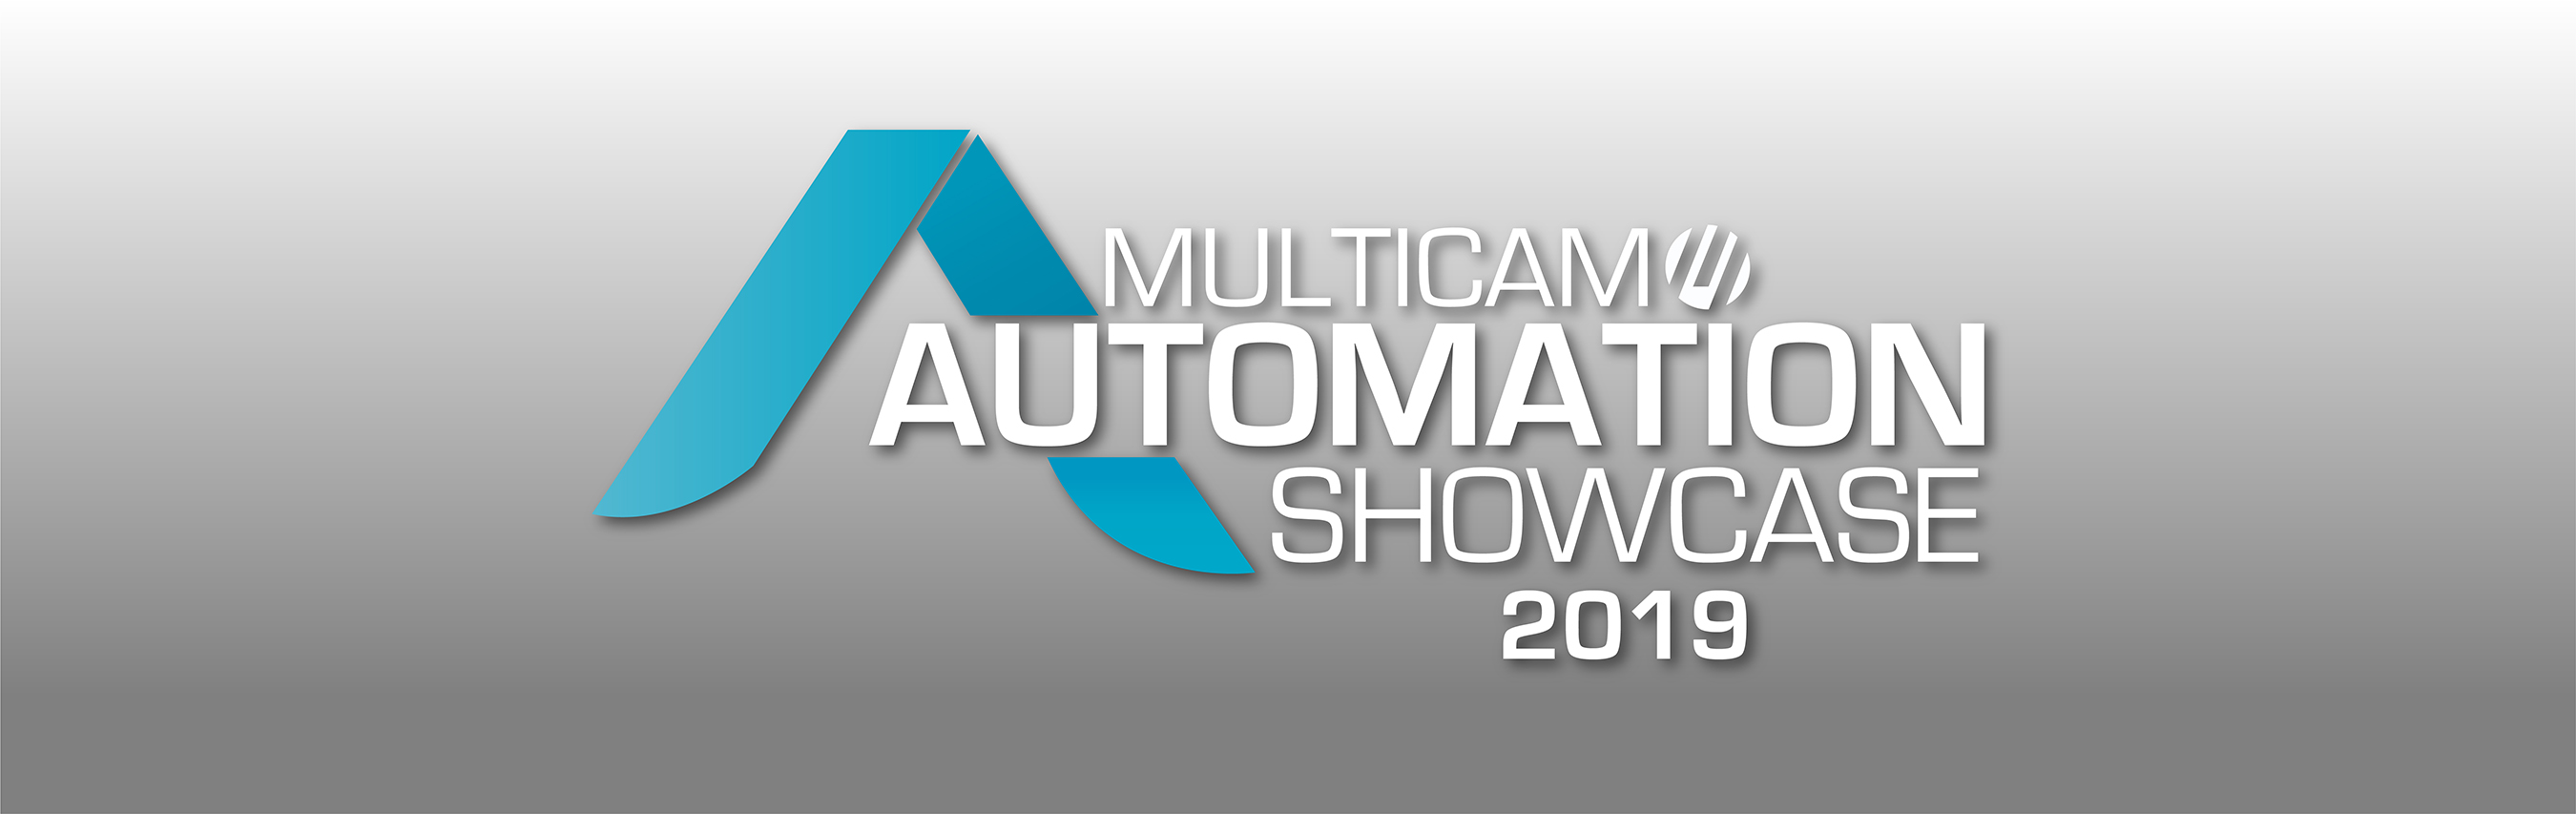 MultiCam Automation Showcase 2019